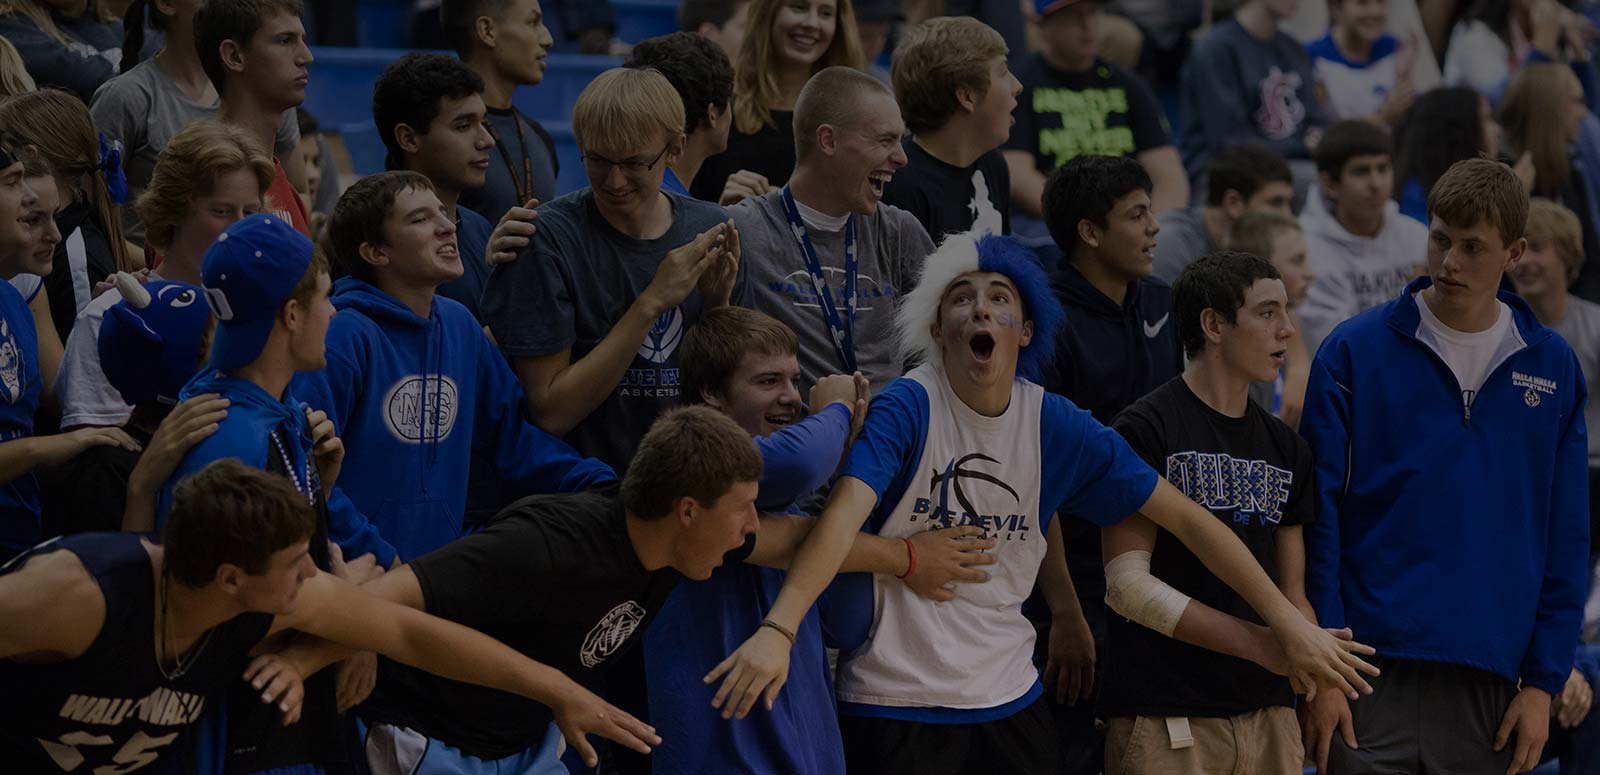 images/slideshow/bluedevils-crowd.jpg